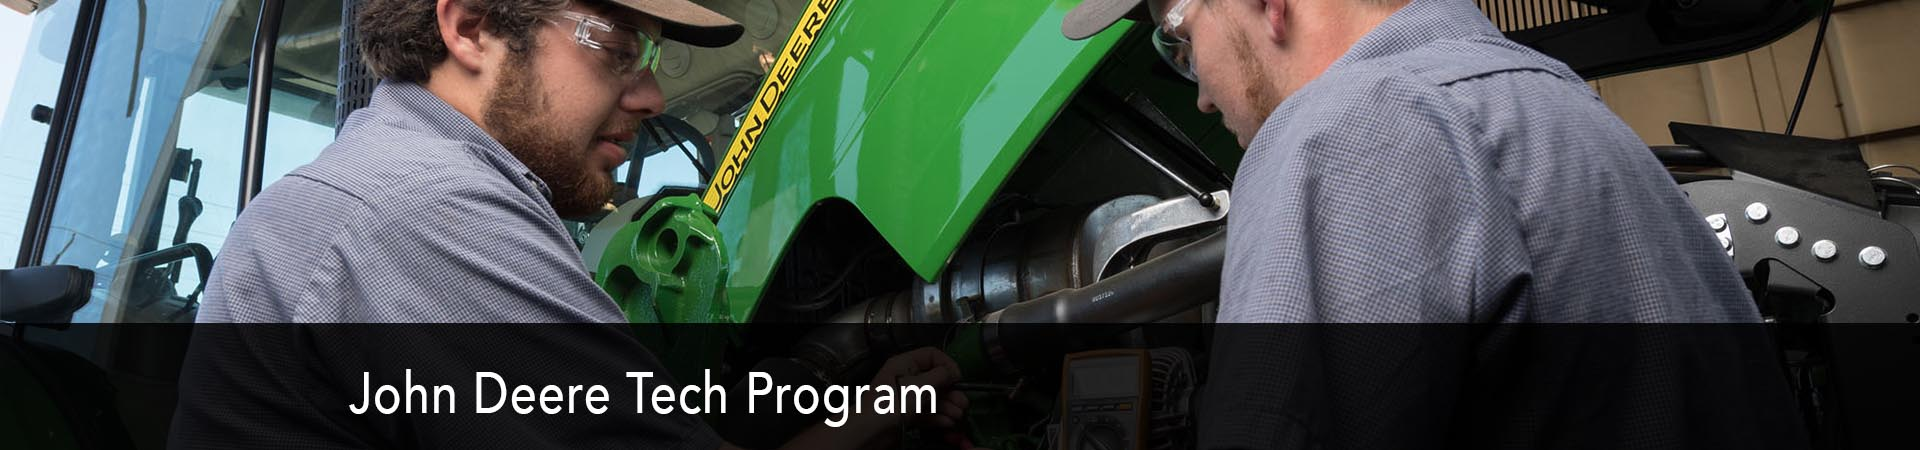 Explore the John Deere Tech Program at NC